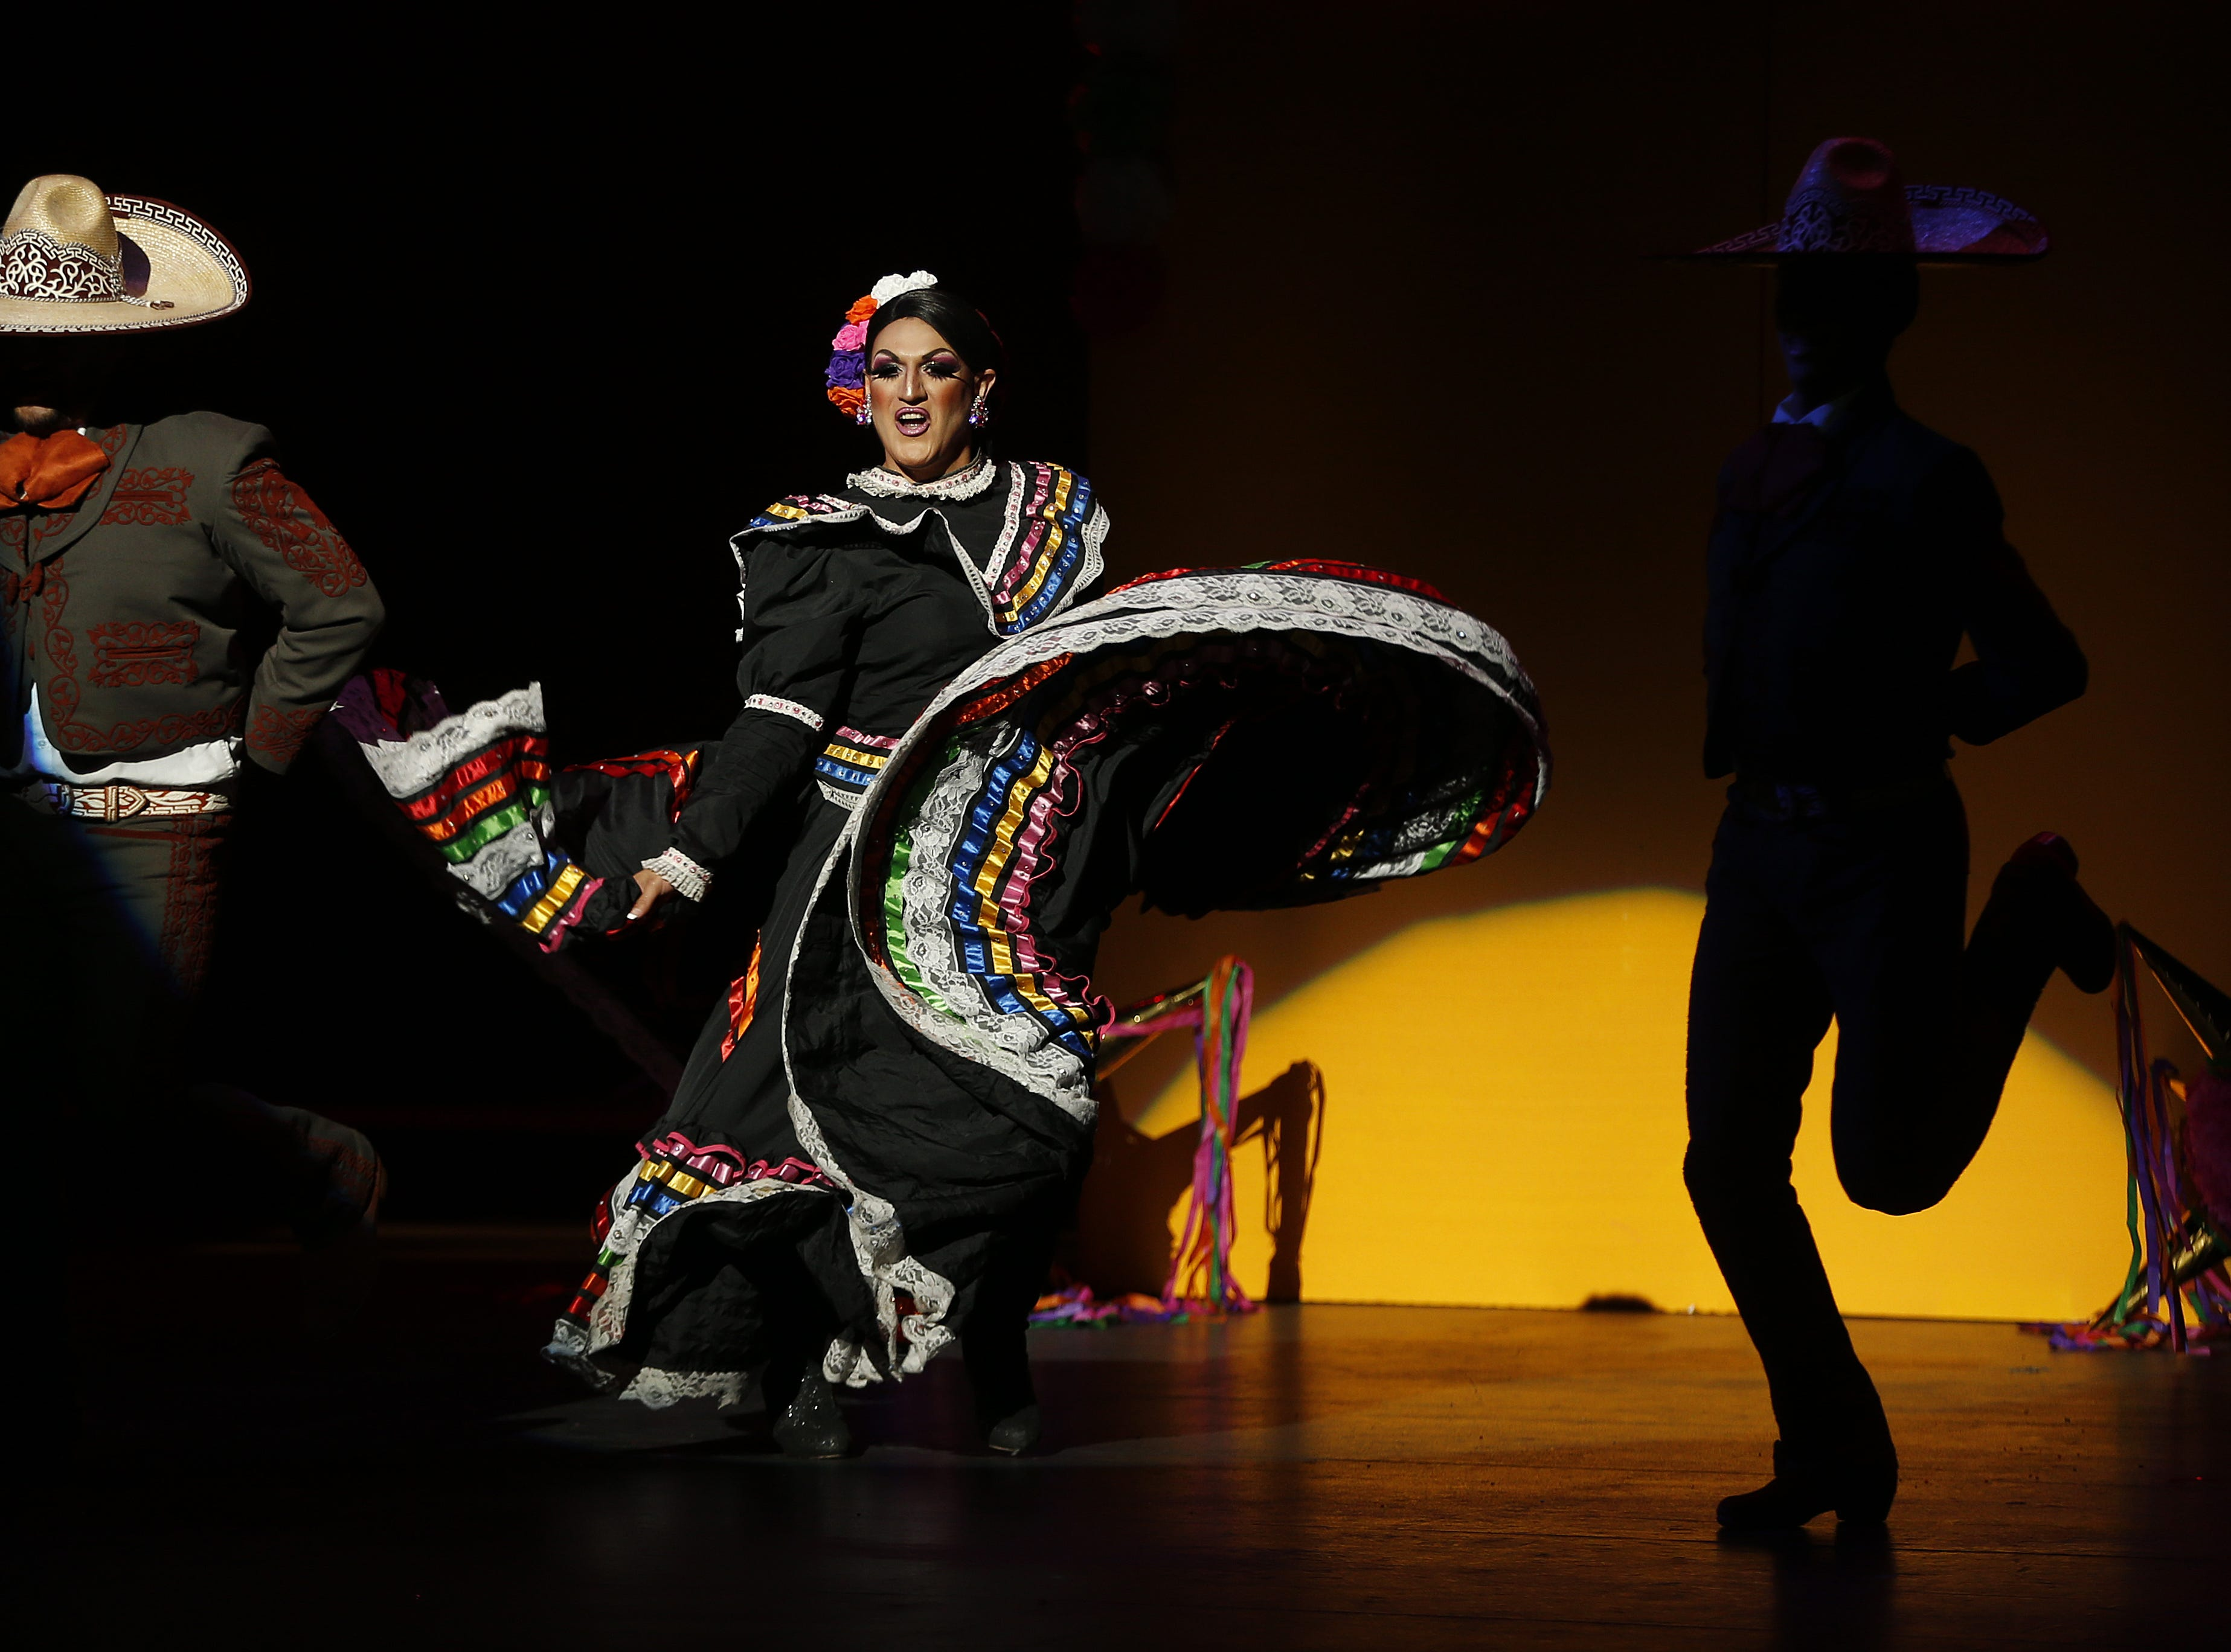 Miss Gay Copper City America Jimena Cavalli performs during the Miss Gay Arizona America pageant 2019 at Tempe Center for the Arts on May 11, 2019.